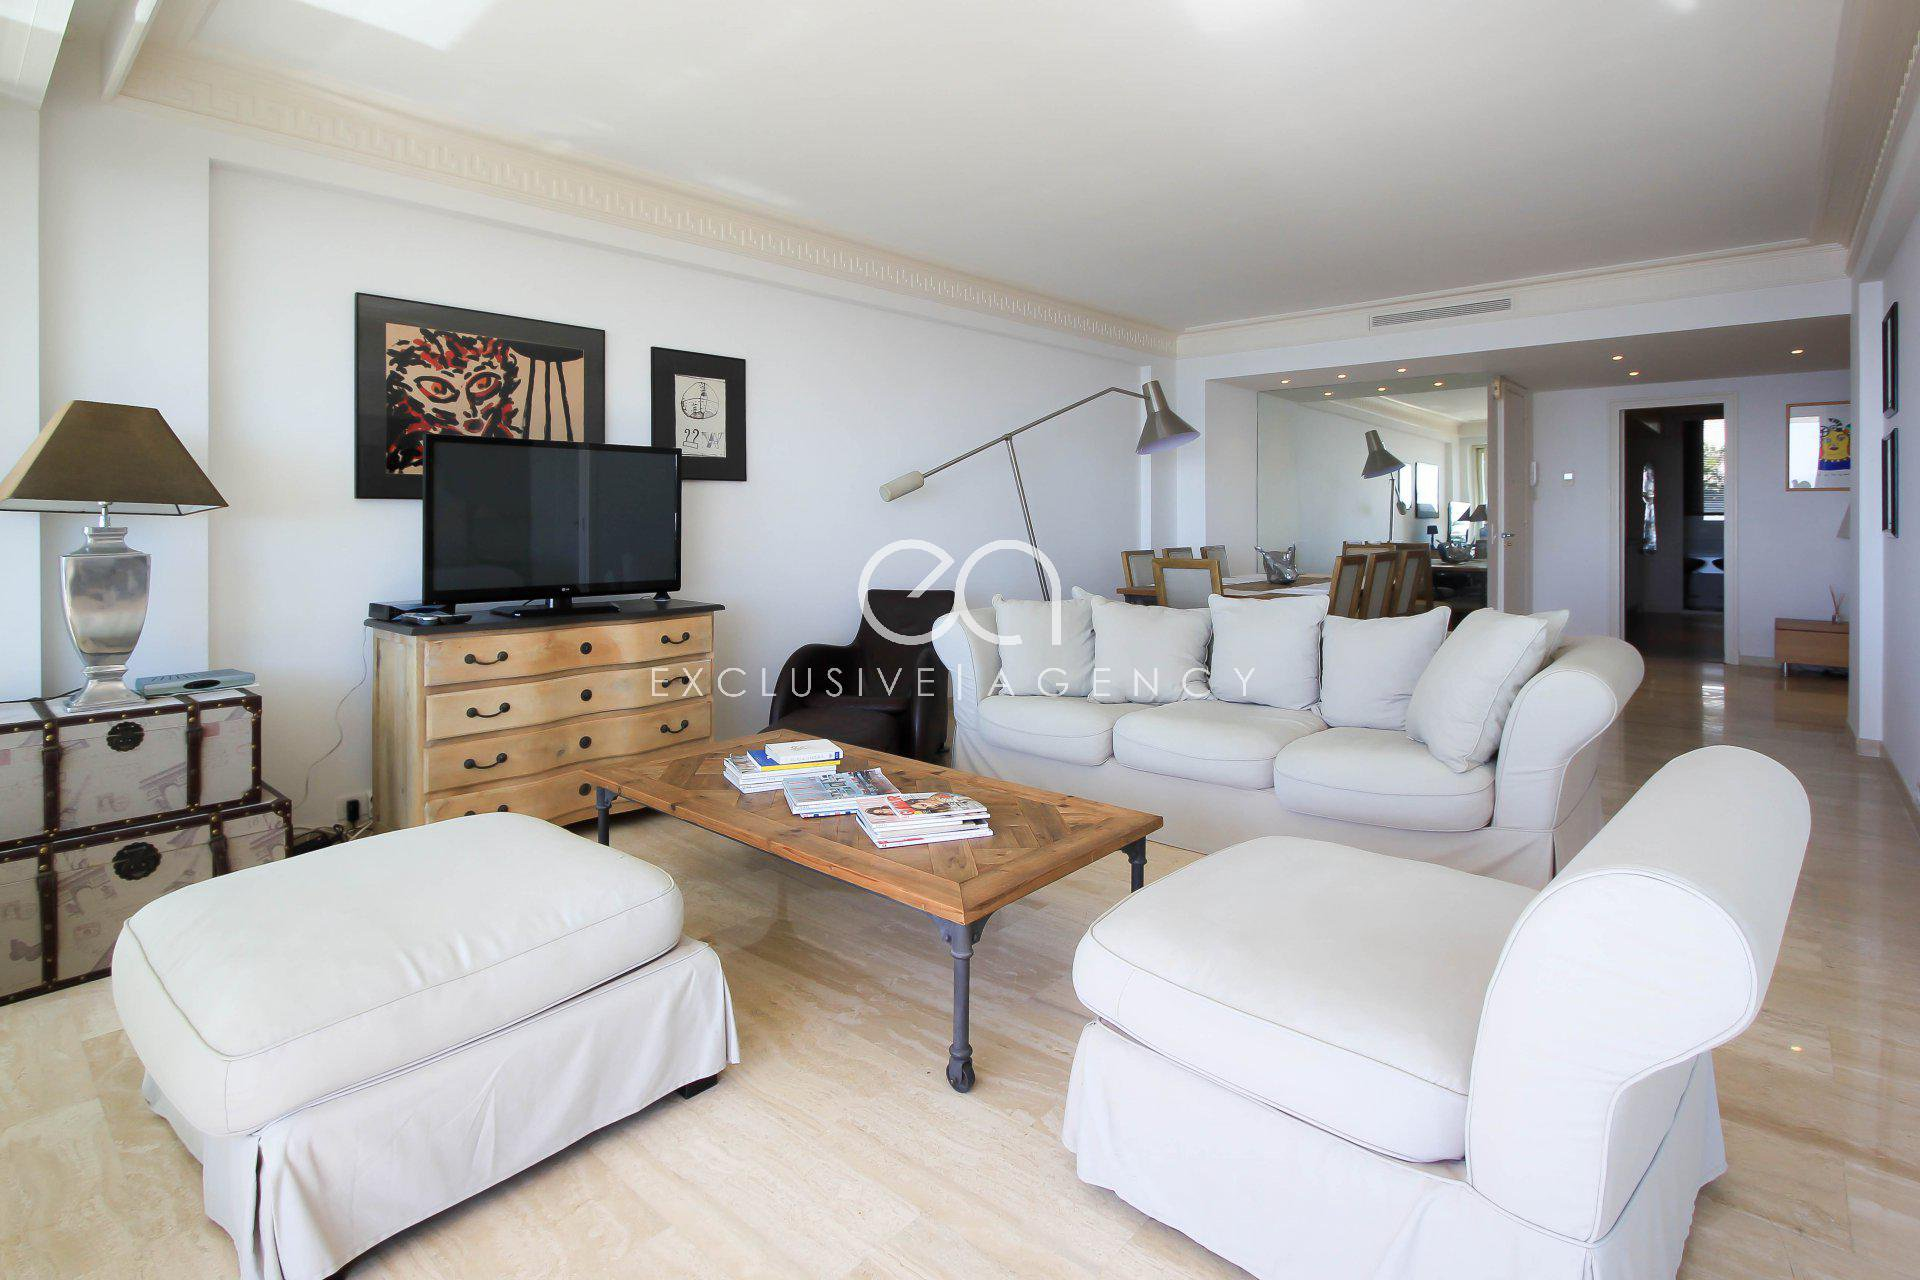 FOR SALE Cannes Californie area luxury residence 2-bedroom apartment with terrace and panoramique sea view.